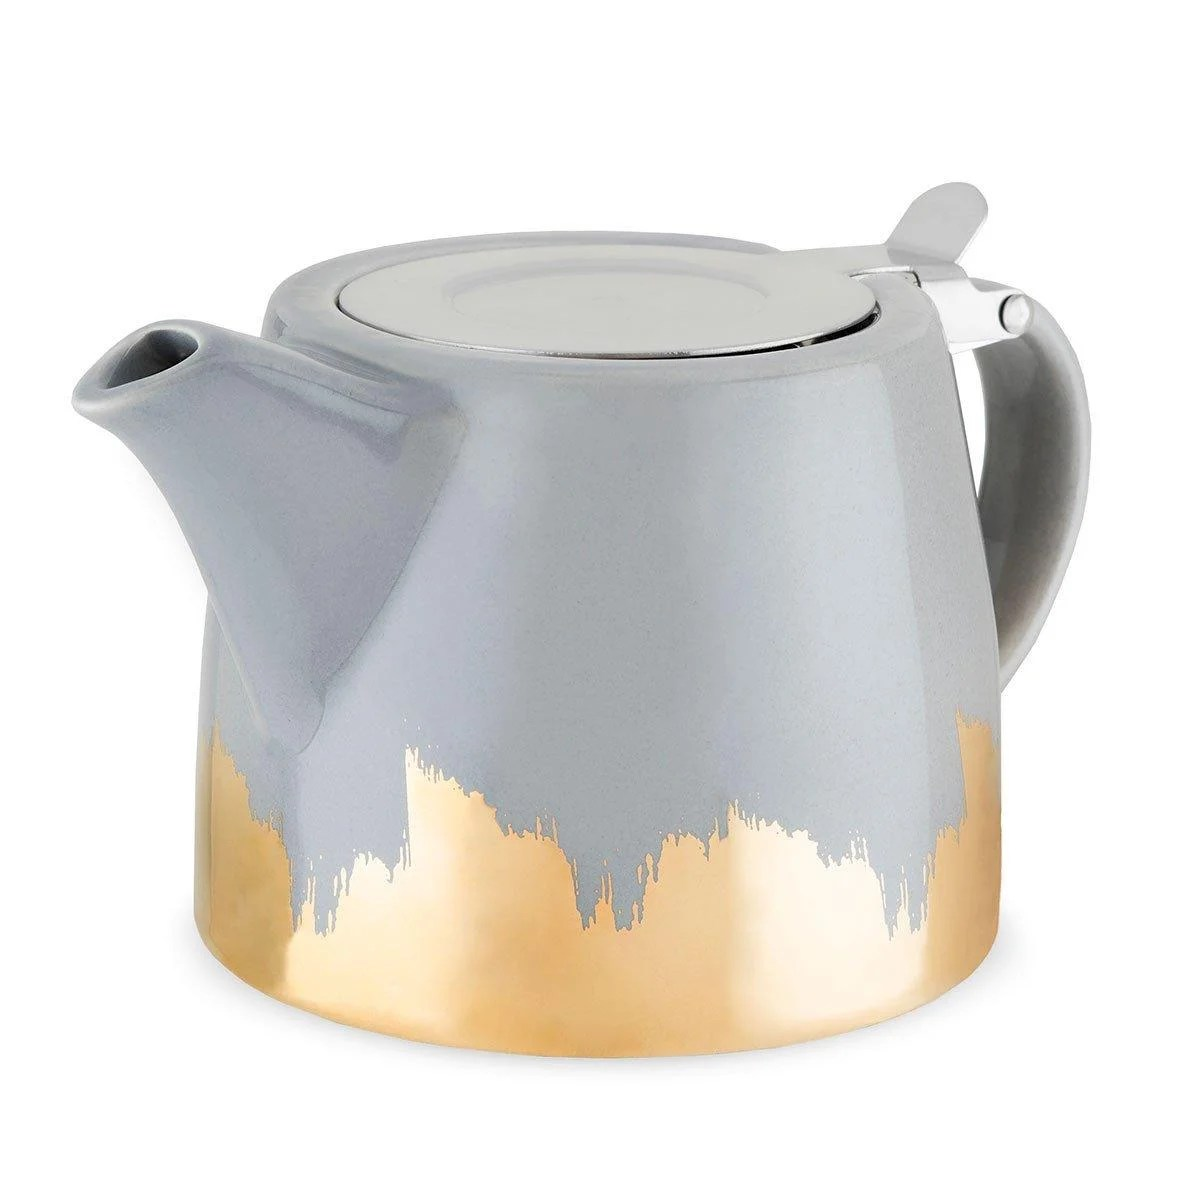 Ceramic Teapot With Infuser Harper Grey And Gold Brushed Ceramic Teapot And Infuser